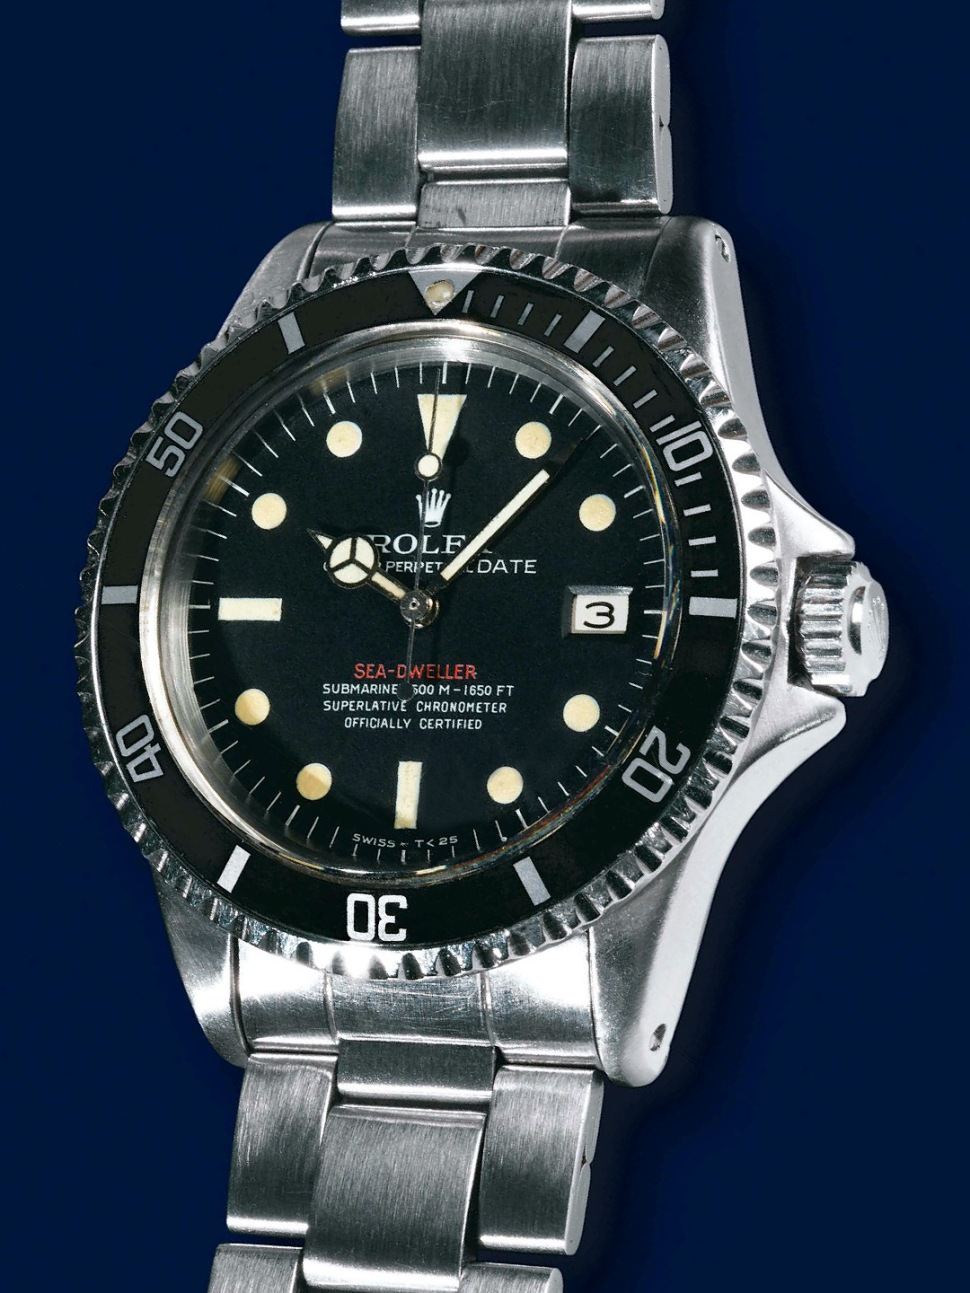 200415-rolex-sea-dweller-1665-1820177-single-red-front